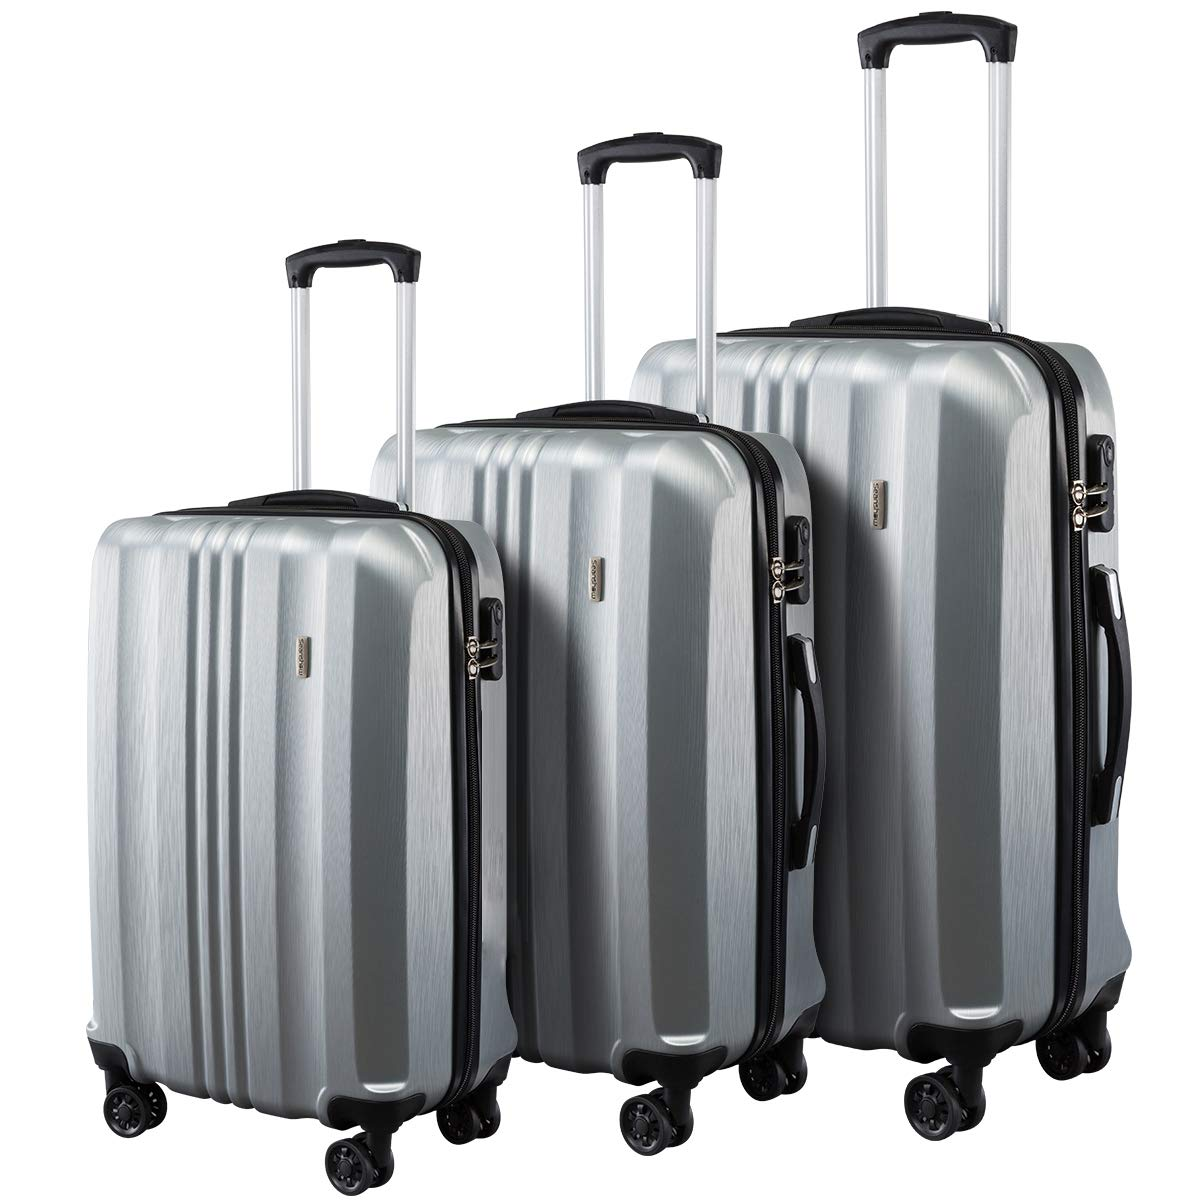 fa4712afbe40 Seanshow Luggage 3 Piece Set ABS Spinner Hardshell Suitcase 20 24 28inch  silver